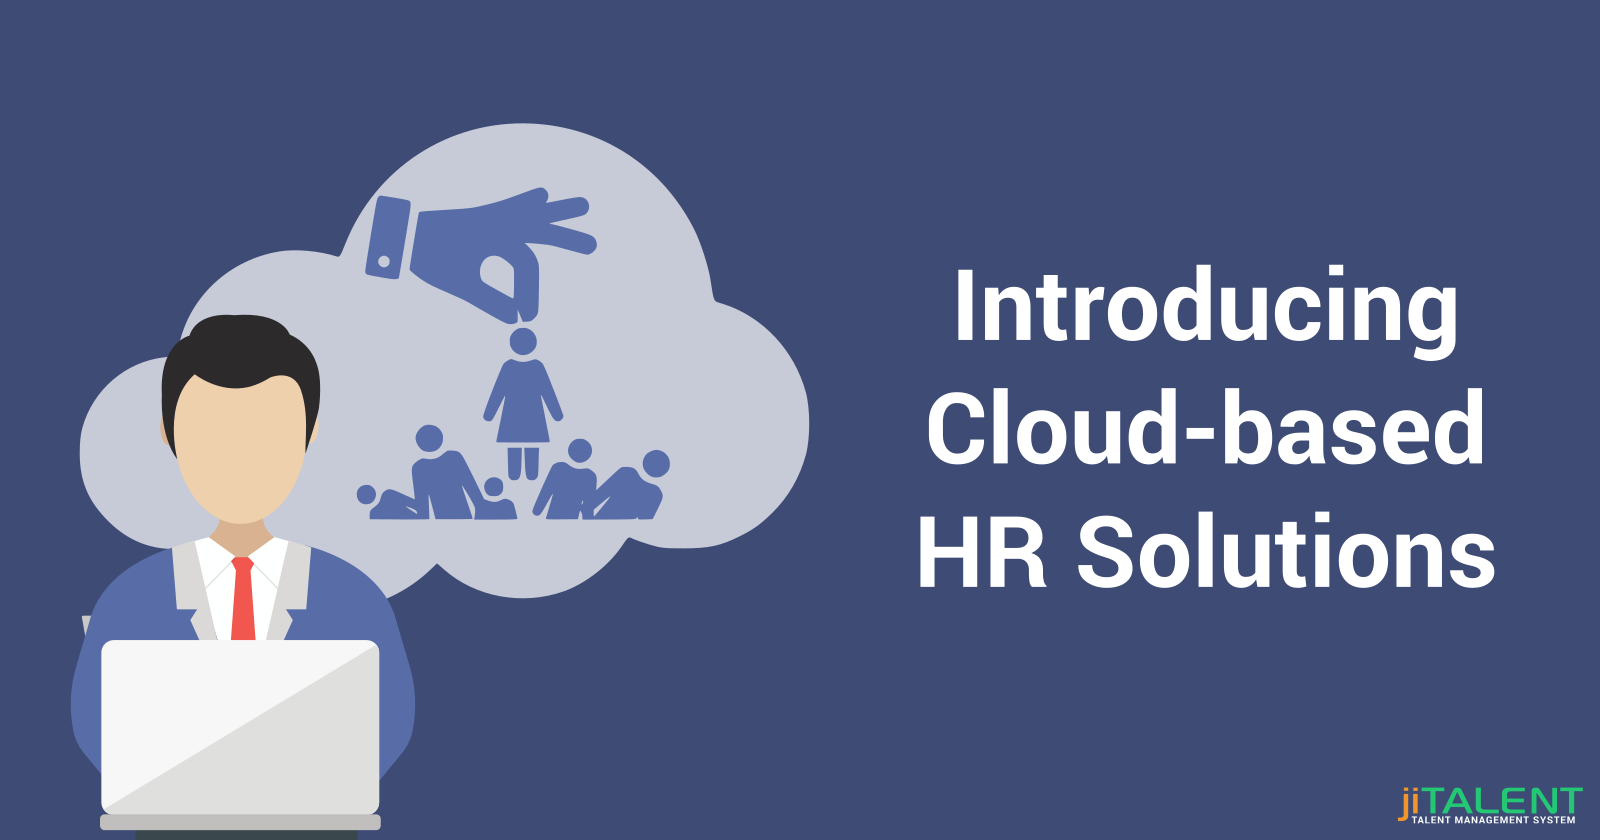 Heading towards Cloud-based HR solution